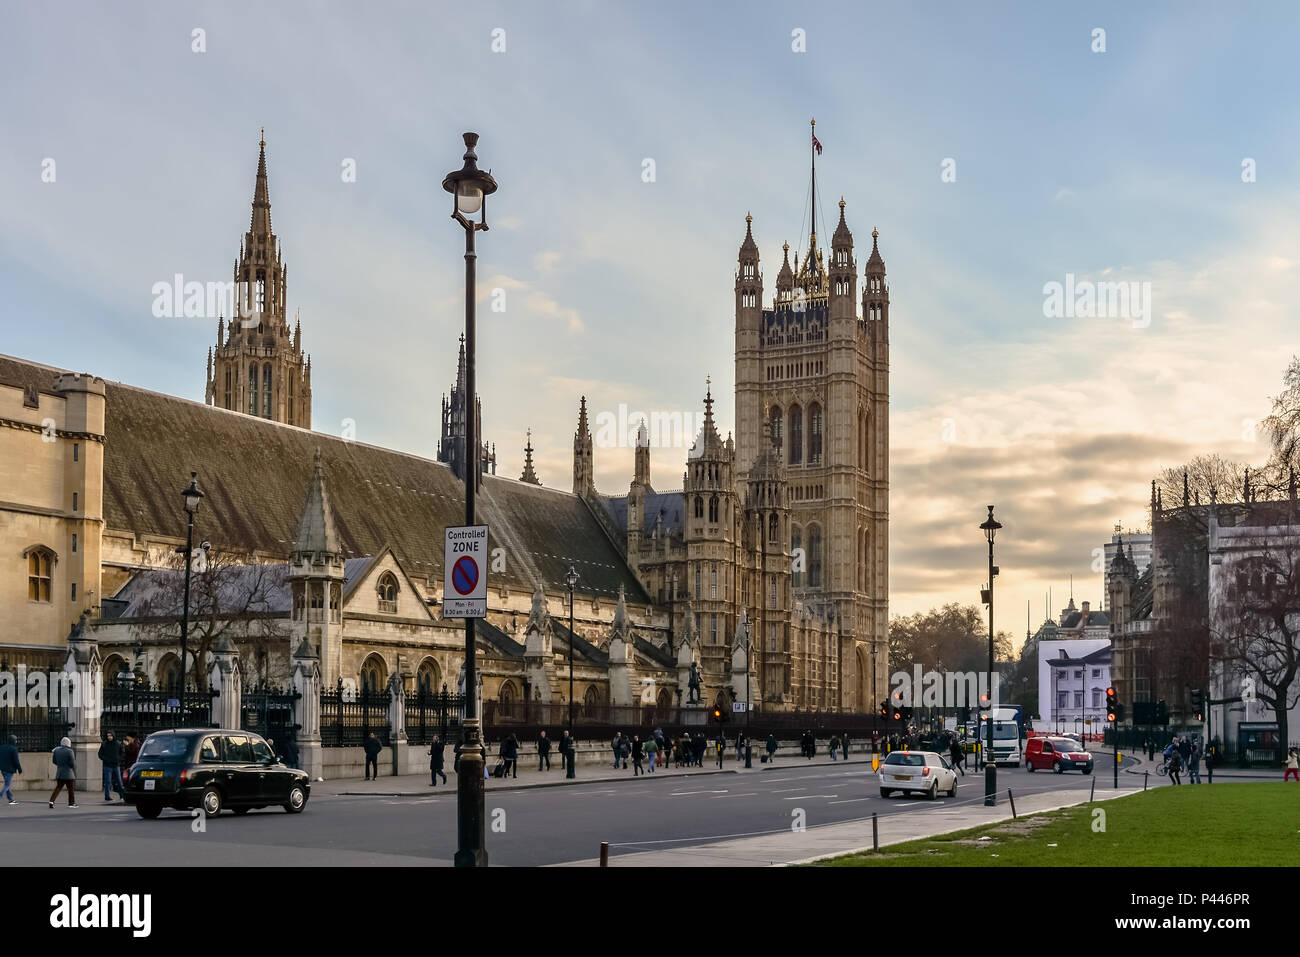 London, UK - January 20, 2015: Central and Victoria Towers of The Palace of Westminster with the bronze statue of Oliver Cromwell and classic British  - Stock Image